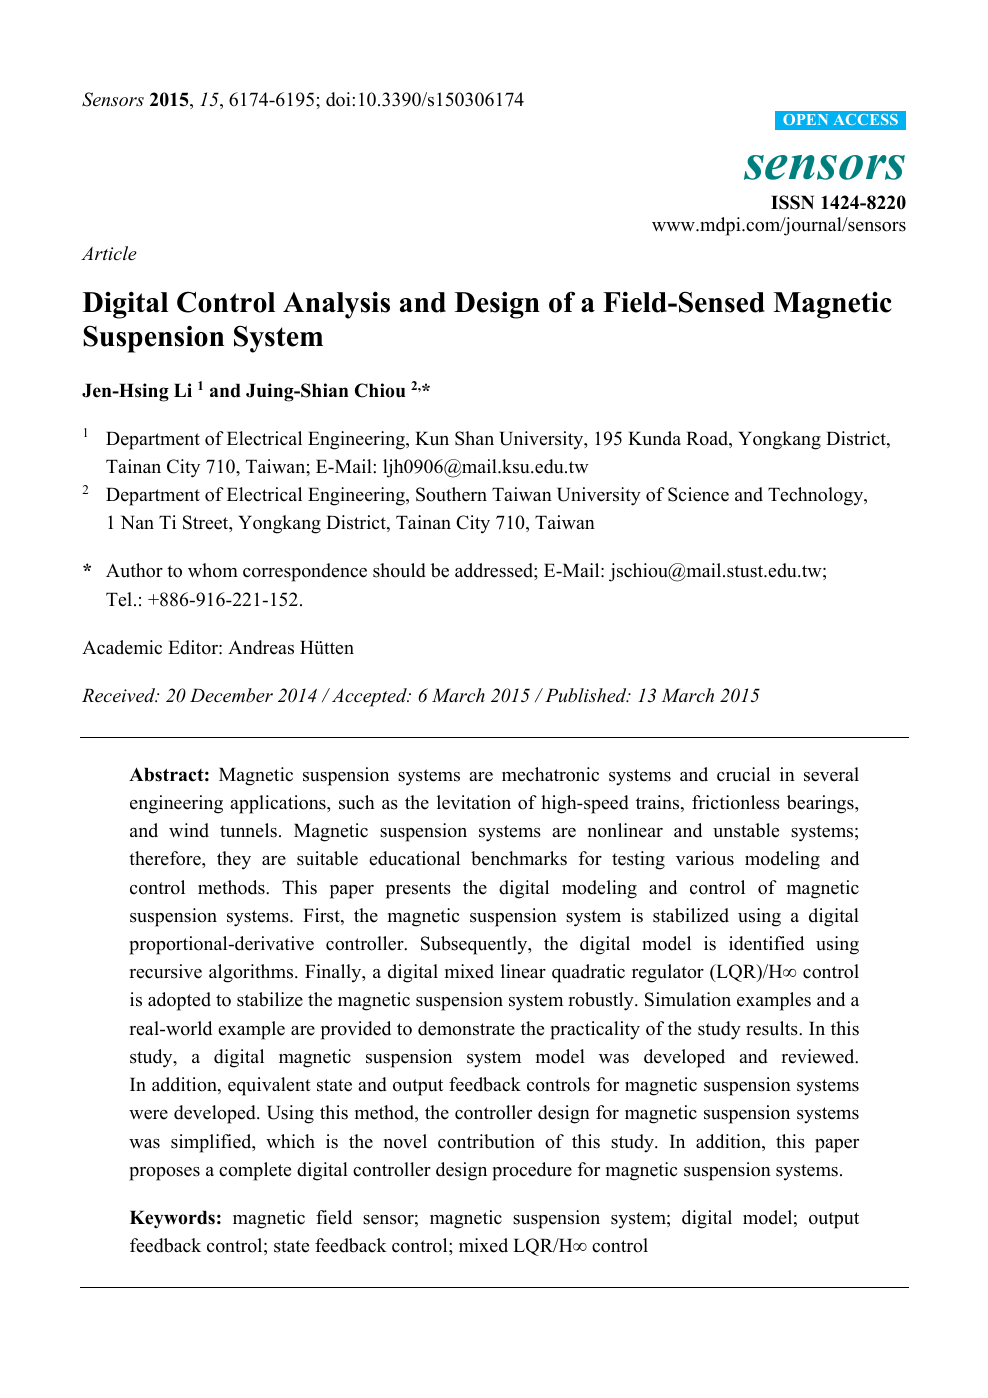 Digital Control Analysis And Design Of A Field Sensed Magnetic Suspension System Topic Of Research Paper In Mechanical Engineering Download Scholarly Article Pdf And Read For Free On Cyberleninka Open Science Hub